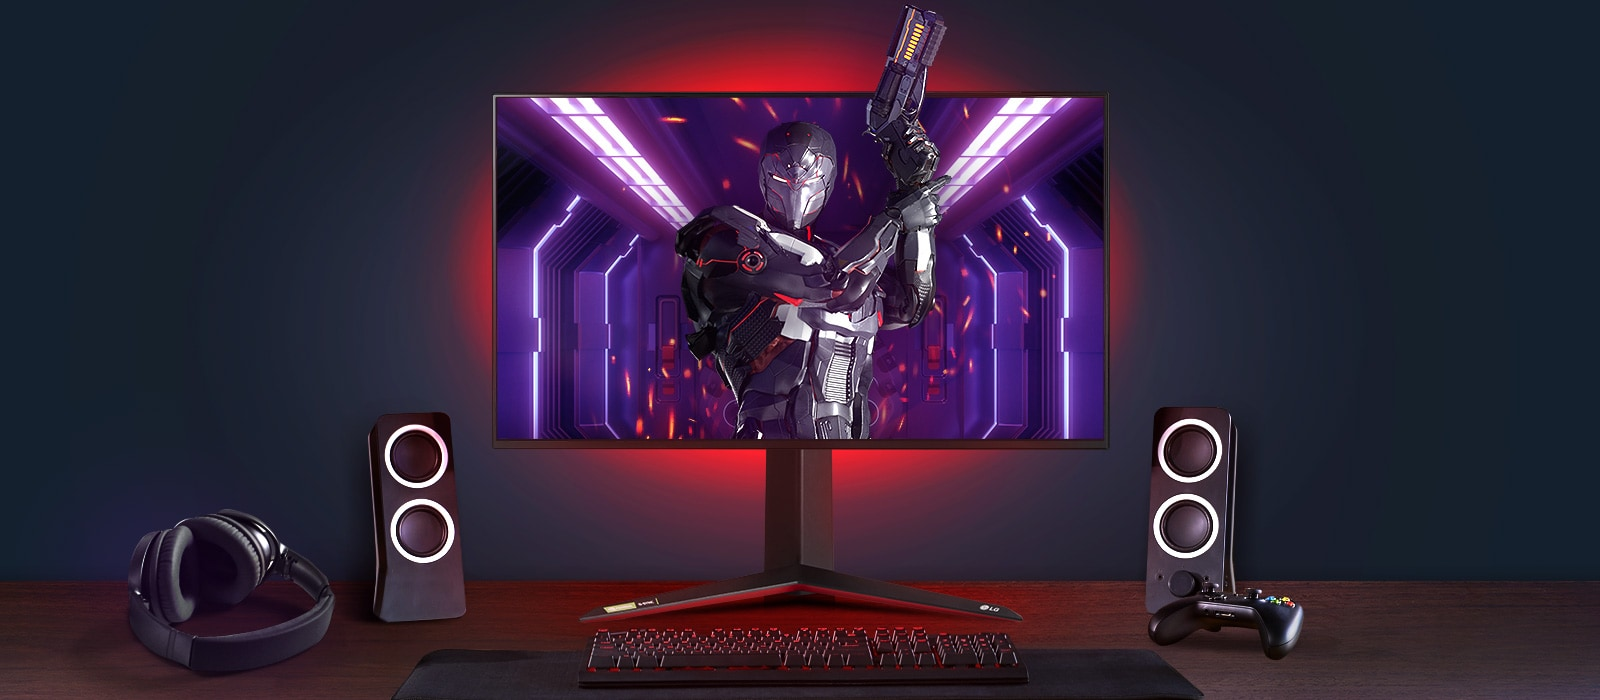 LG 27GN950 best 4K gaming monitor